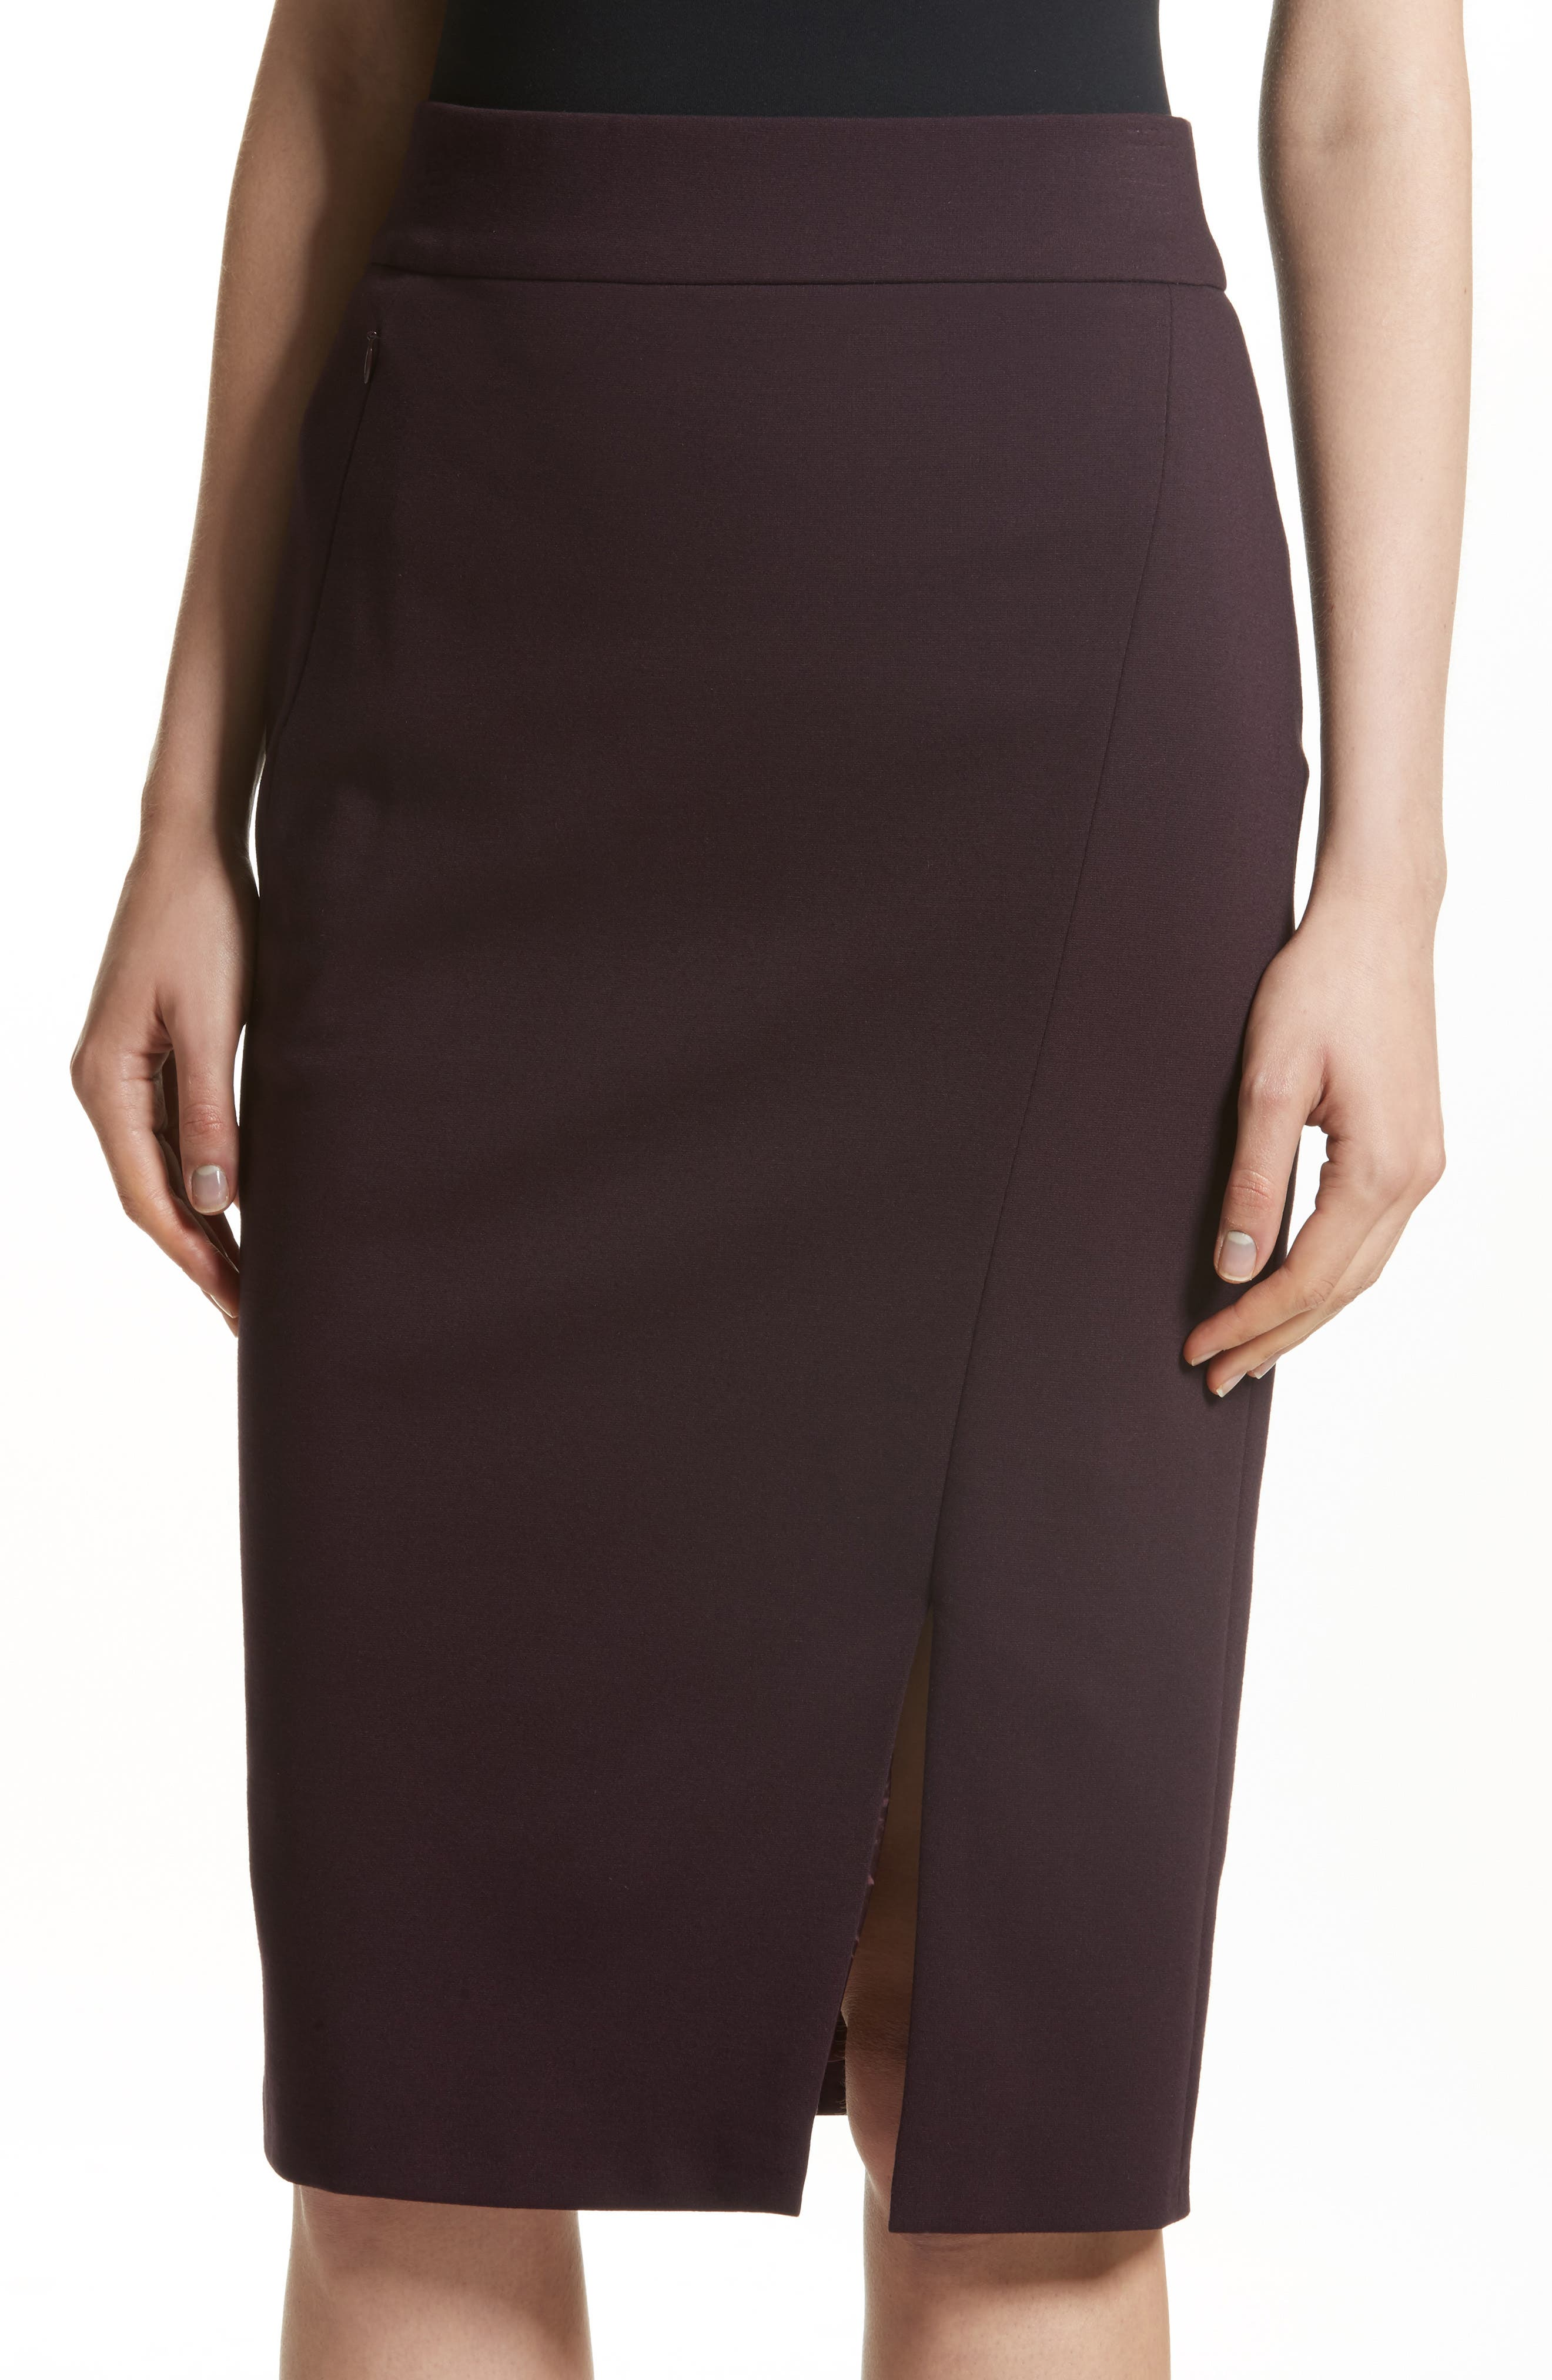 Gabardine Pencil Skirt,                             Alternate thumbnail 4, color,                             930